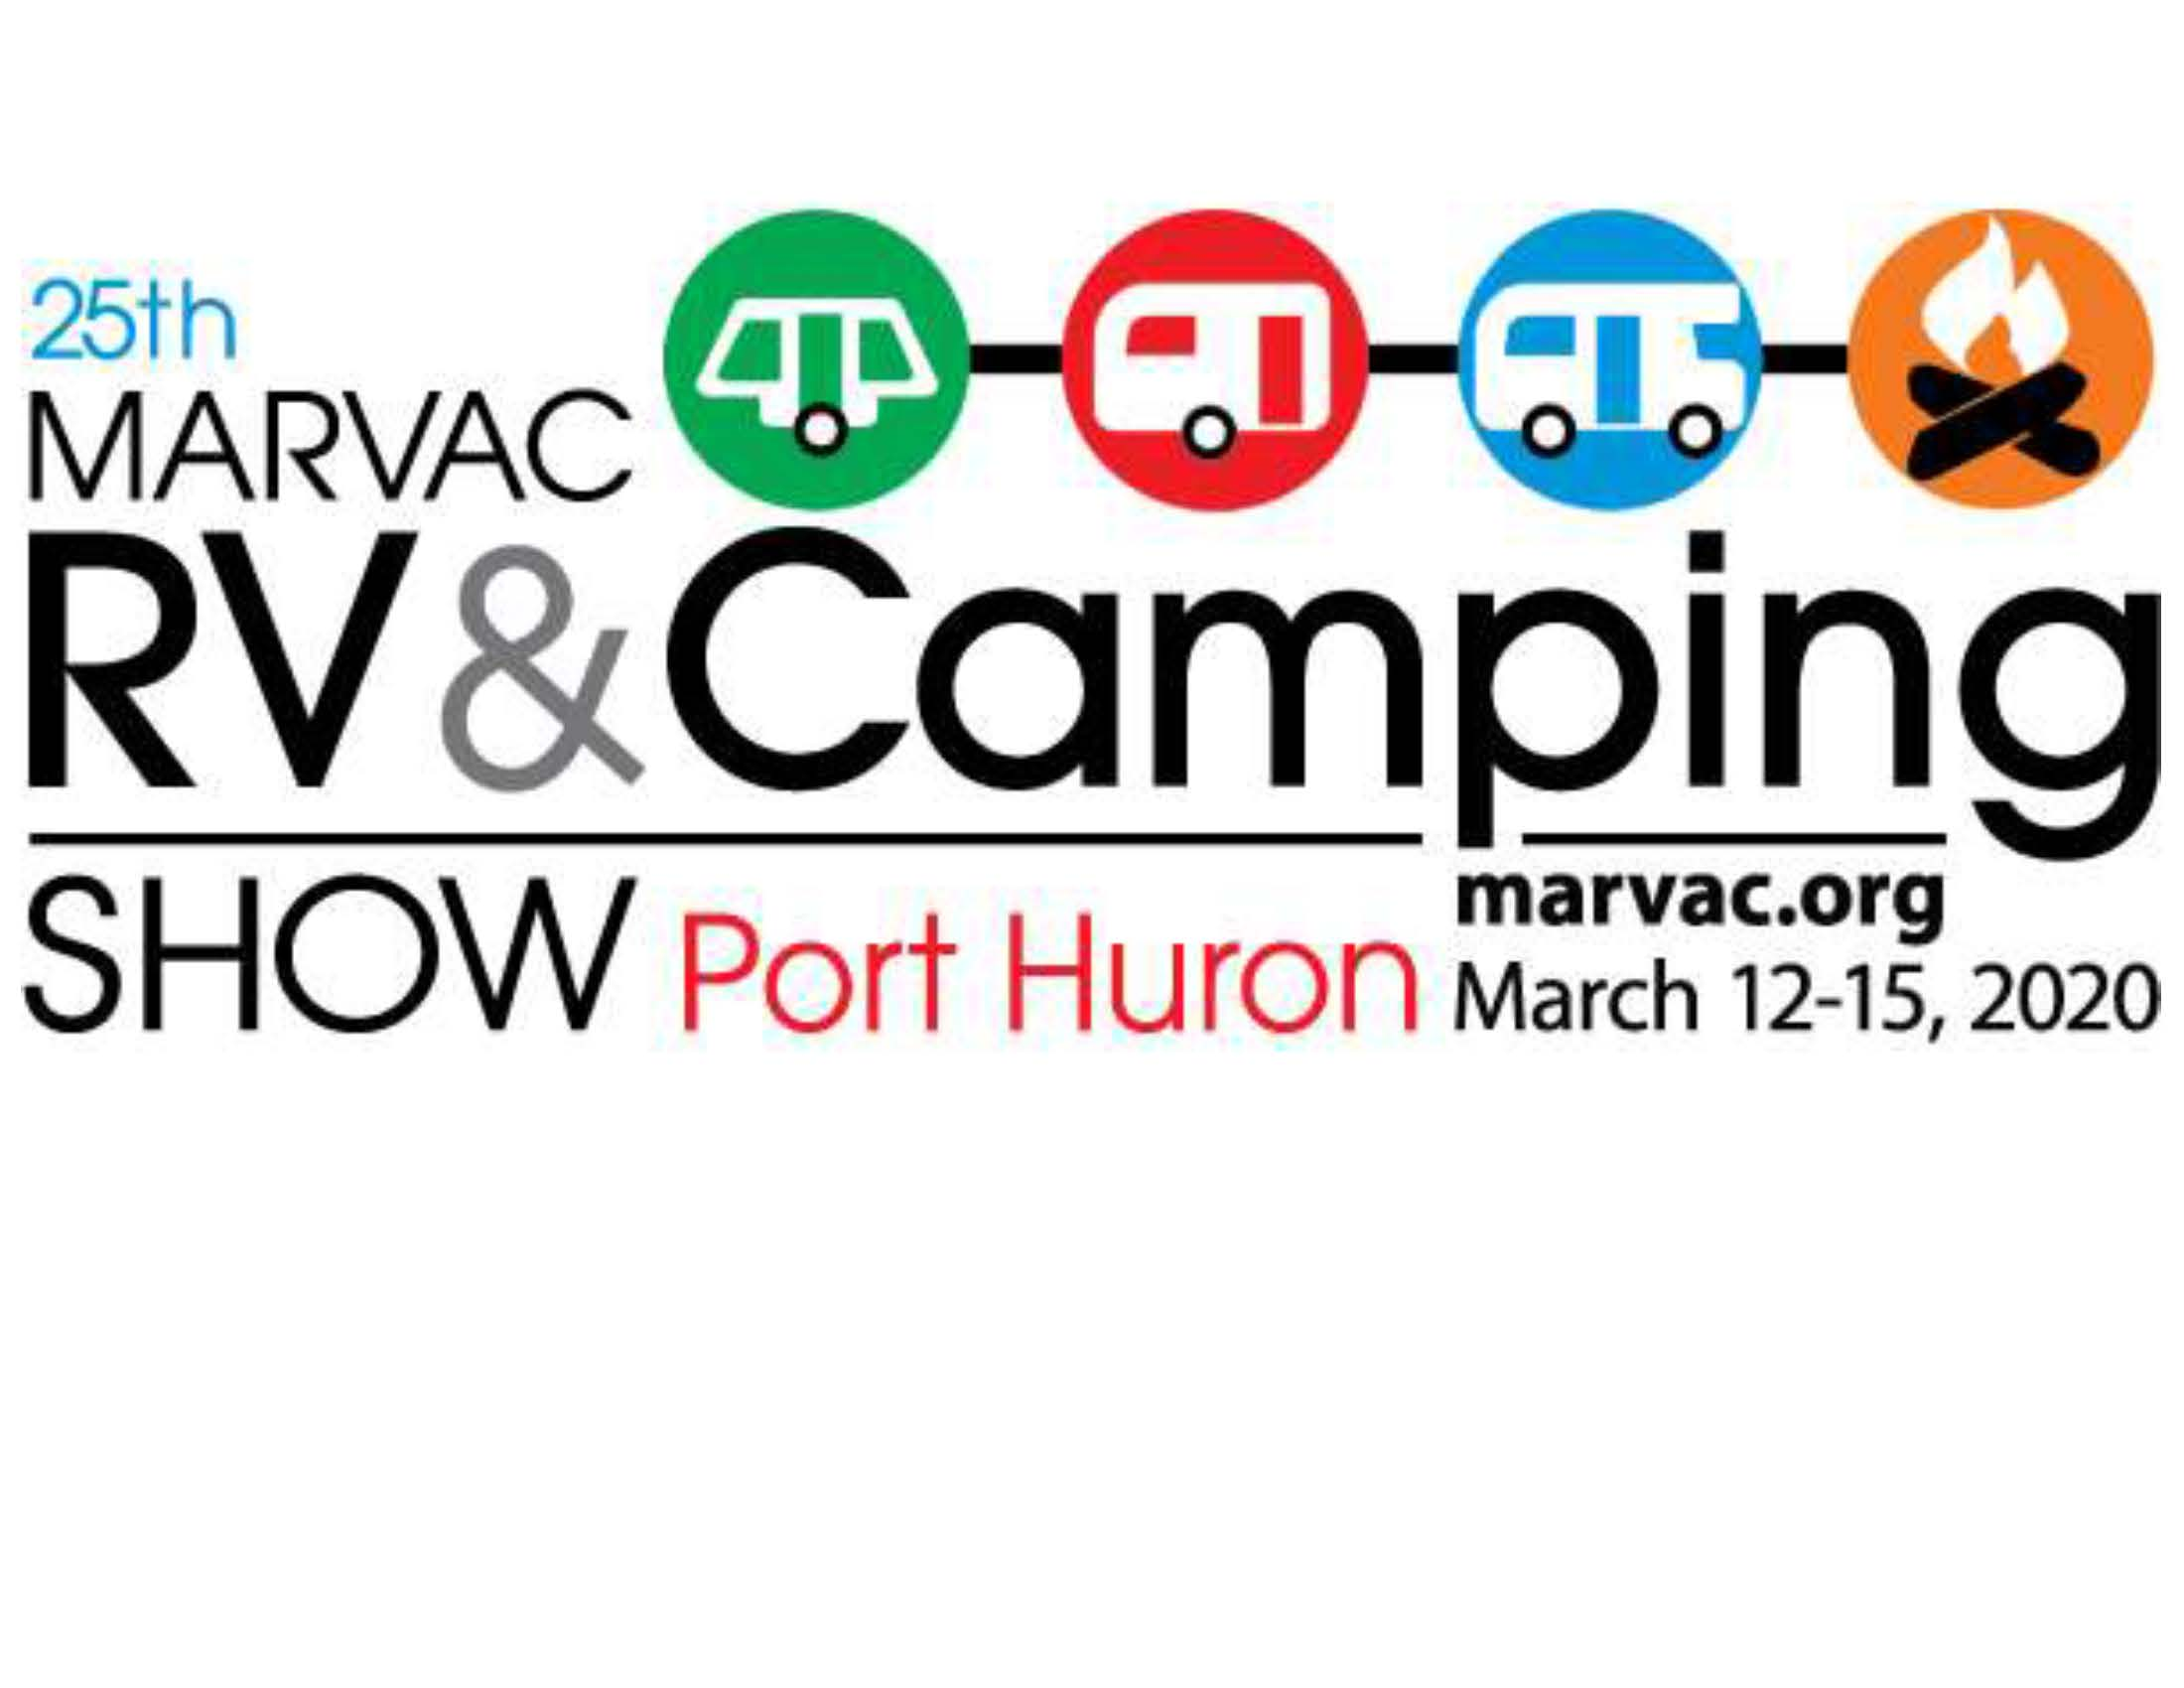 2020 Port Huron RV & Camping Show